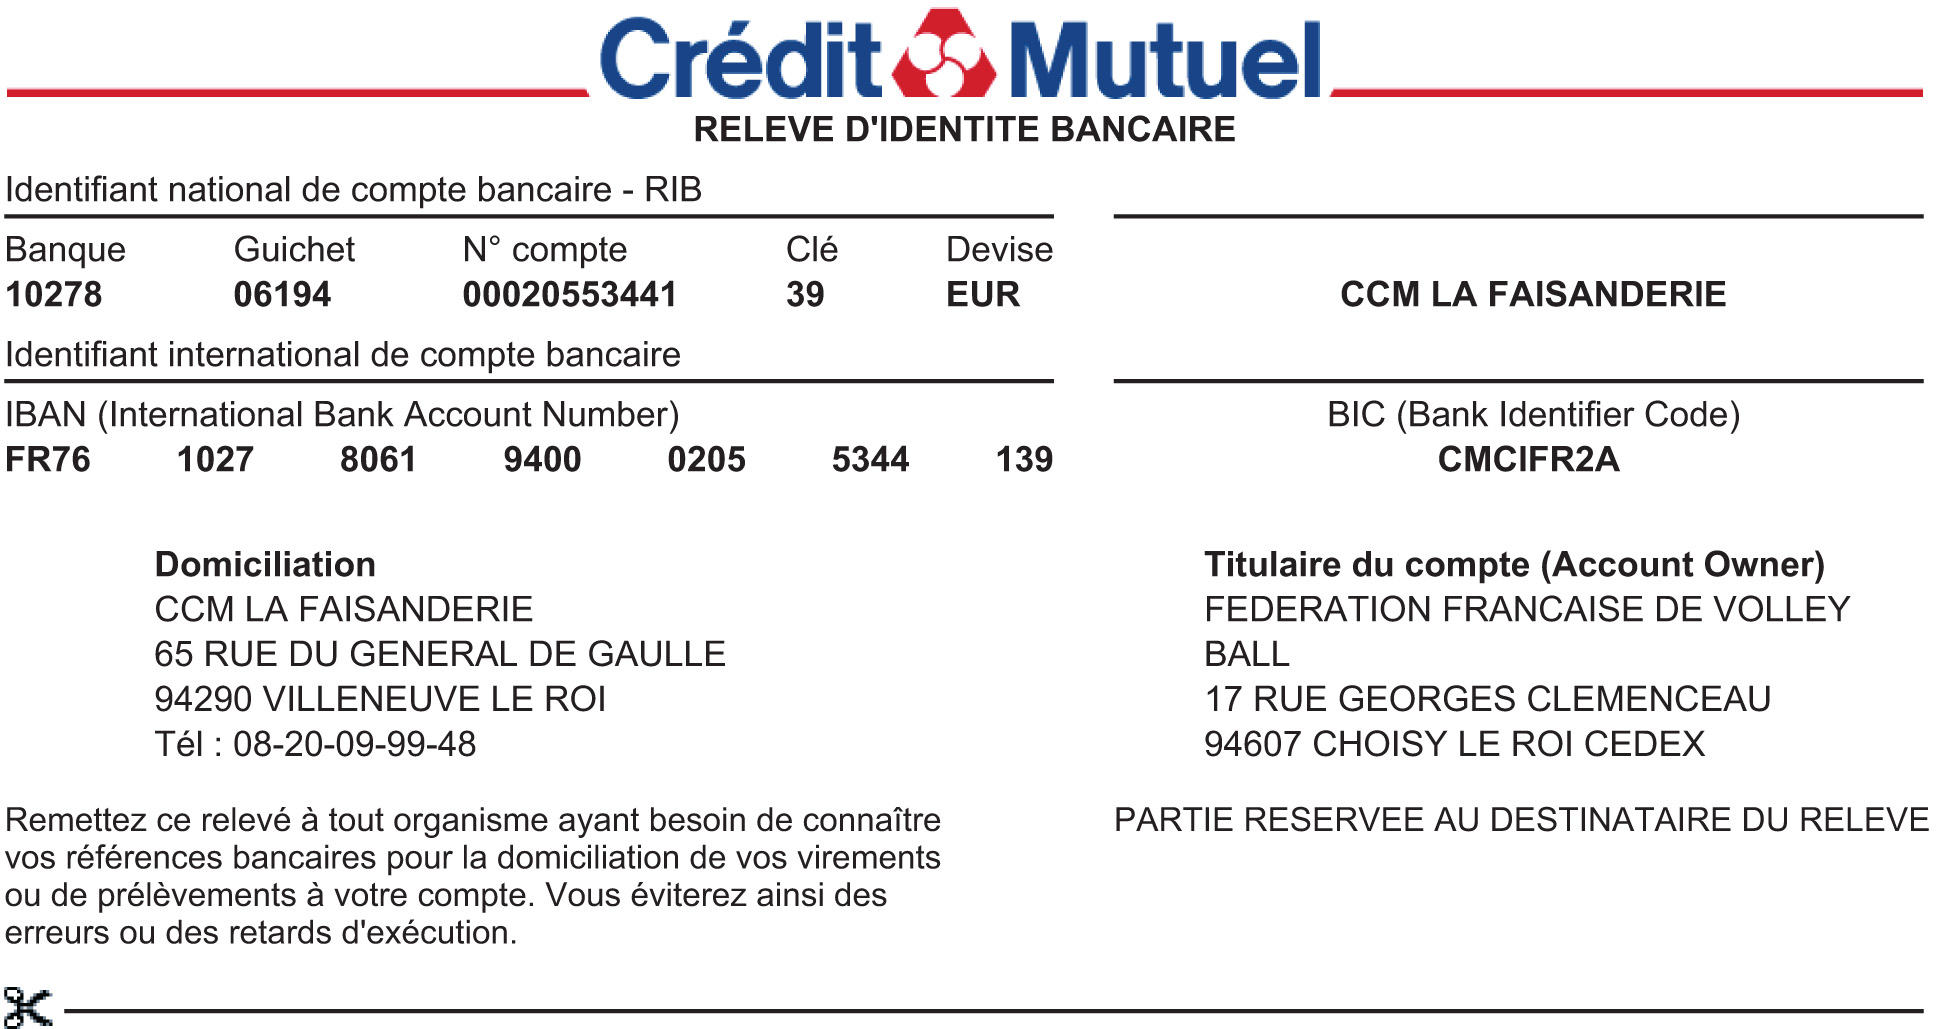 F d ration fran aise de volley ball - Plafond compte courant credit mutuel ...